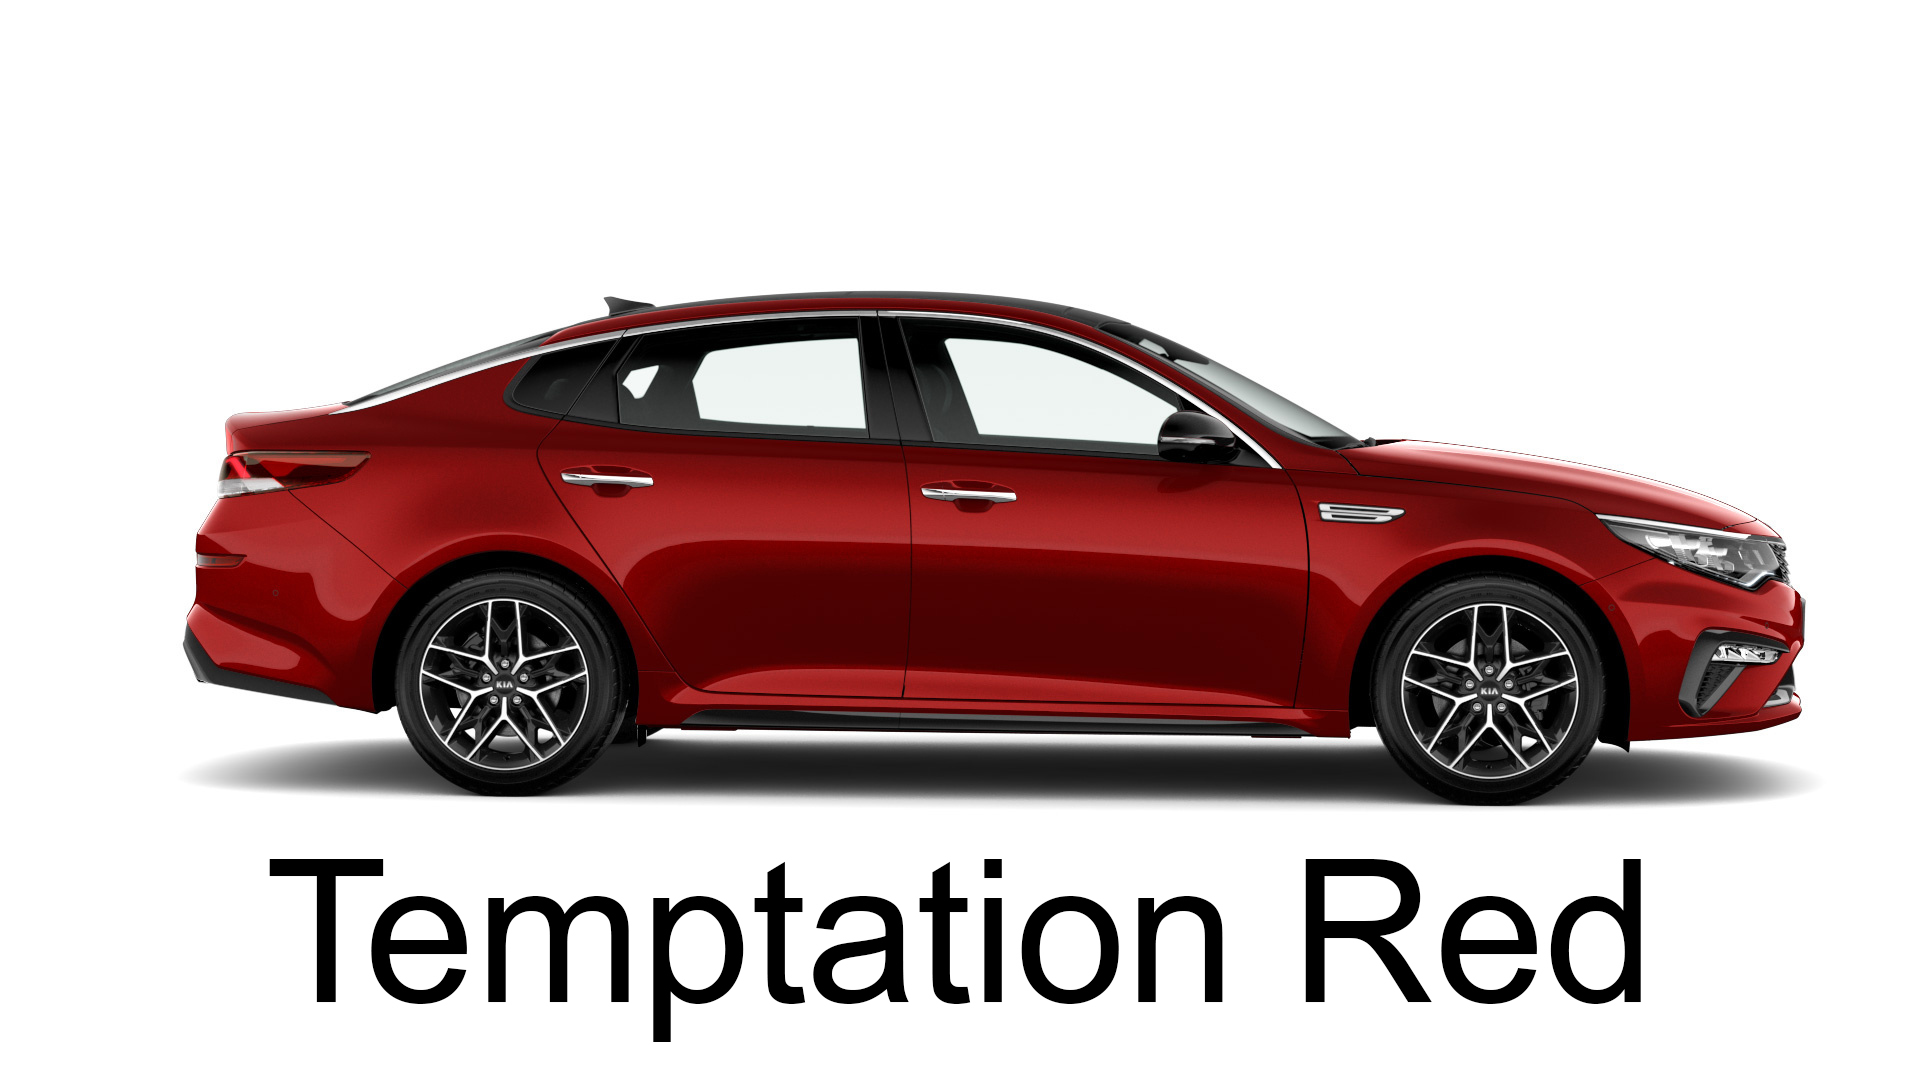 Optima Temptation Red